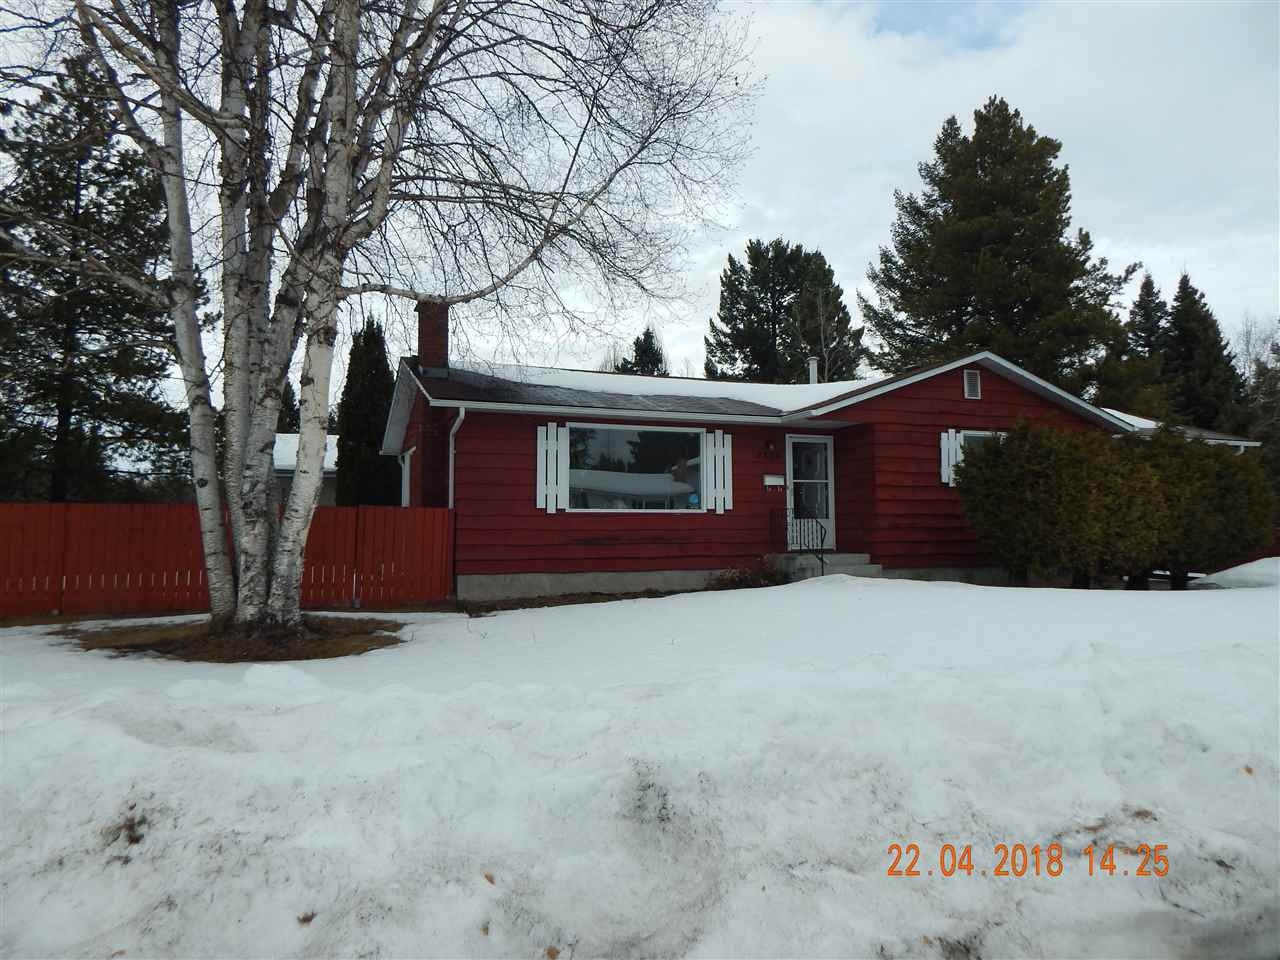 """Main Photo: 7836 PIEDMONT Crescent in Prince George: Lower College House for sale in """"LOWER COLLEGE HEIGHTS"""" (PG City South (Zone 74))  : MLS®# R2250402"""